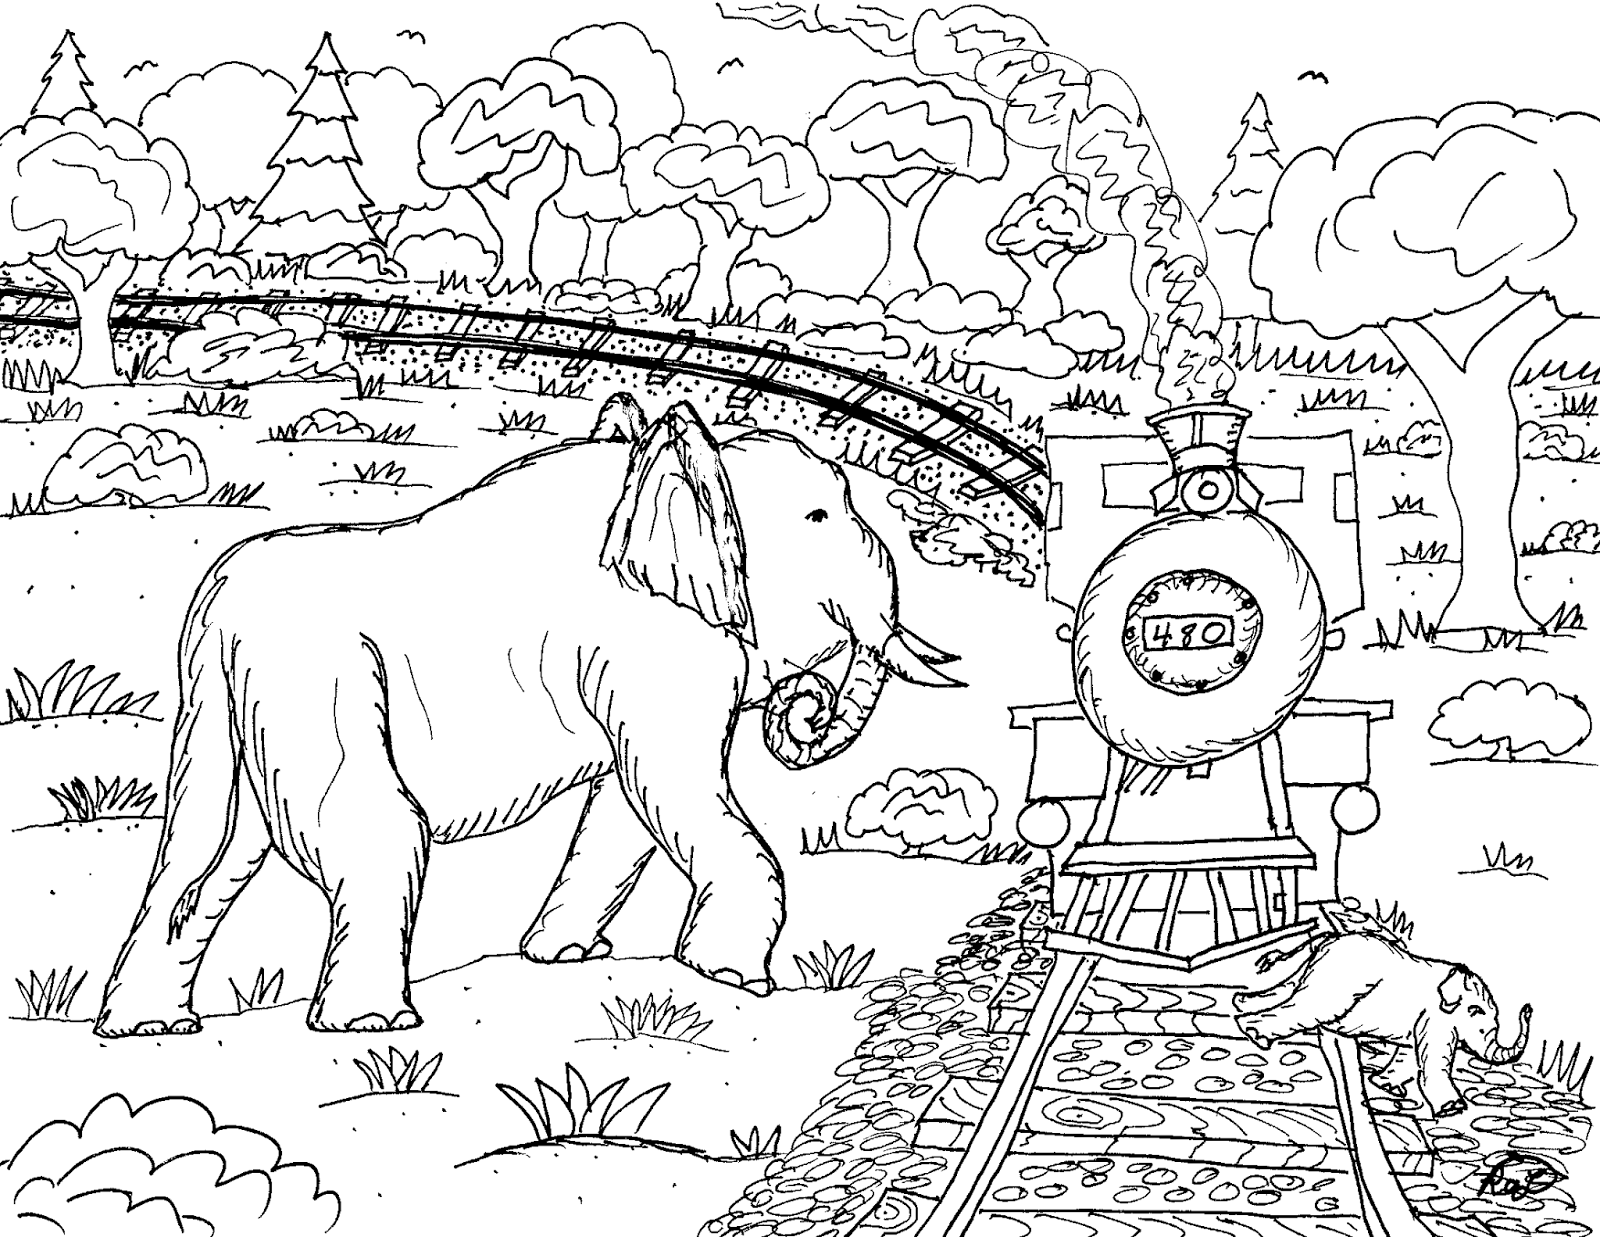 Robin\'s Great Coloring Pages: The Greatest Showman circus coloring ...